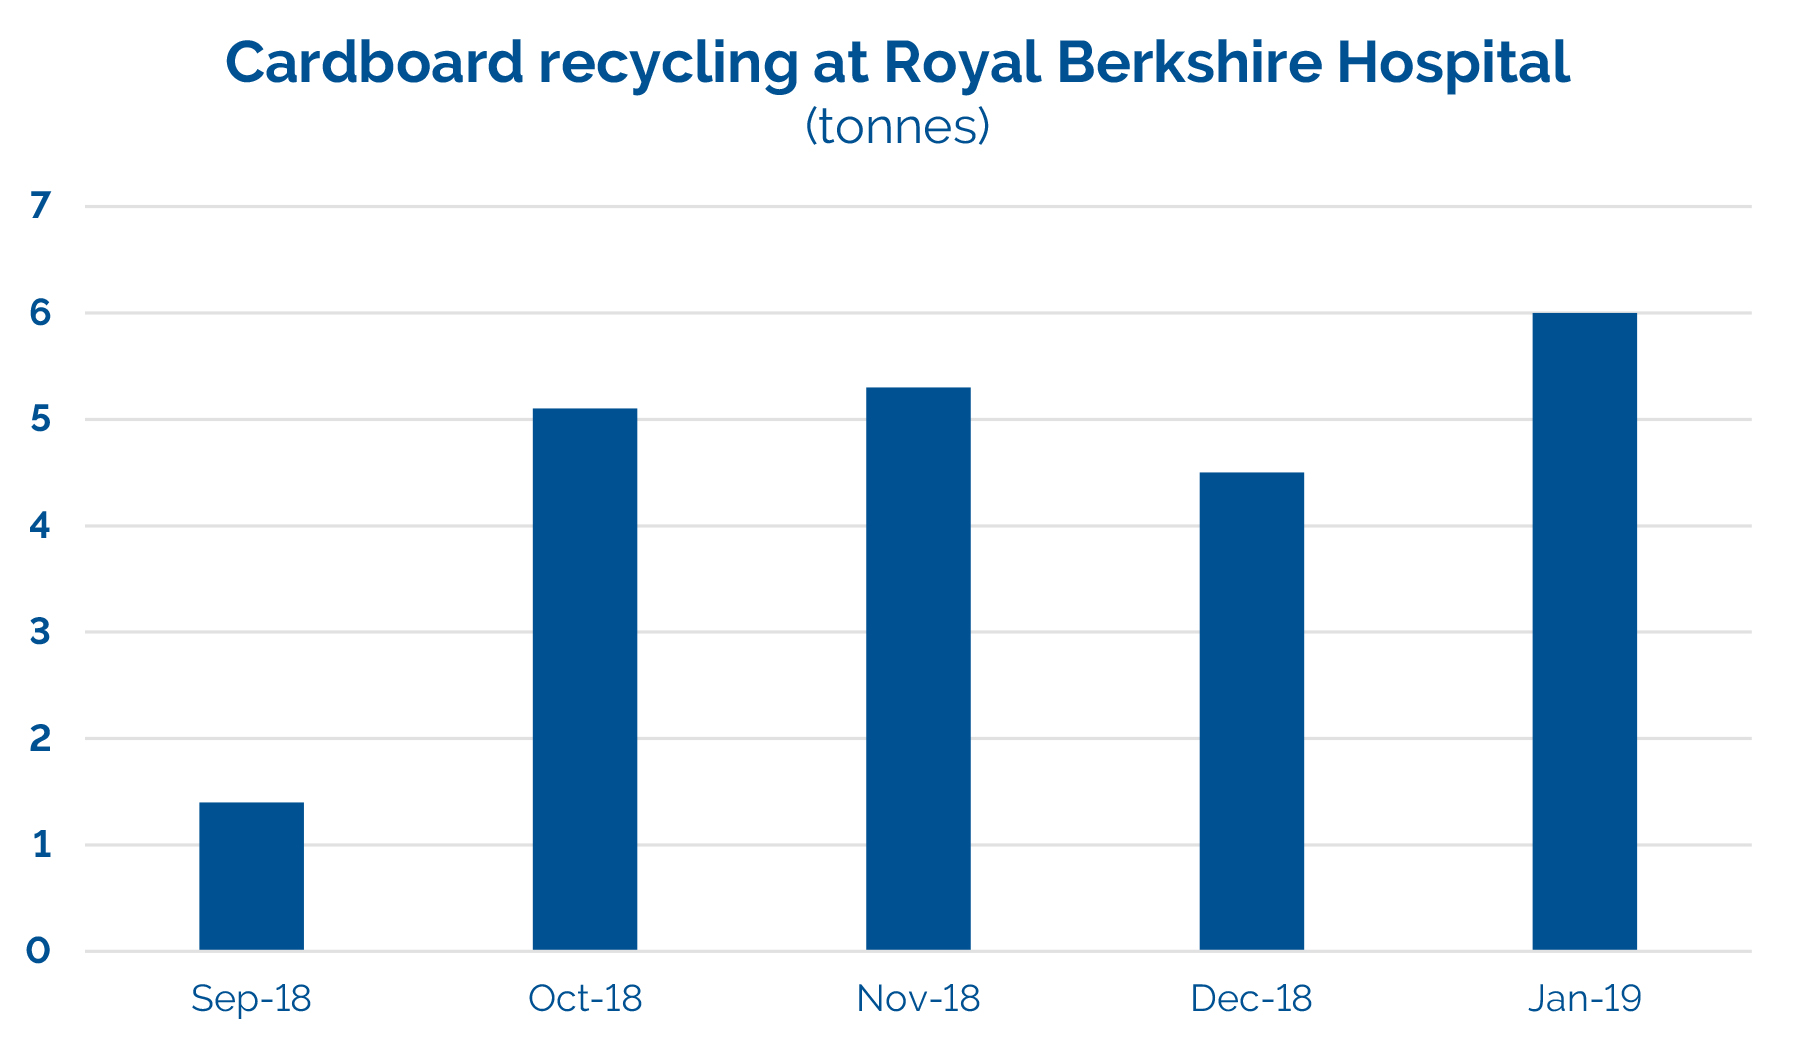 Cardboard recycling tonnages at the Royal Berkshire Hospital in Reading, which increased by 400% between September 2018 and January 2018